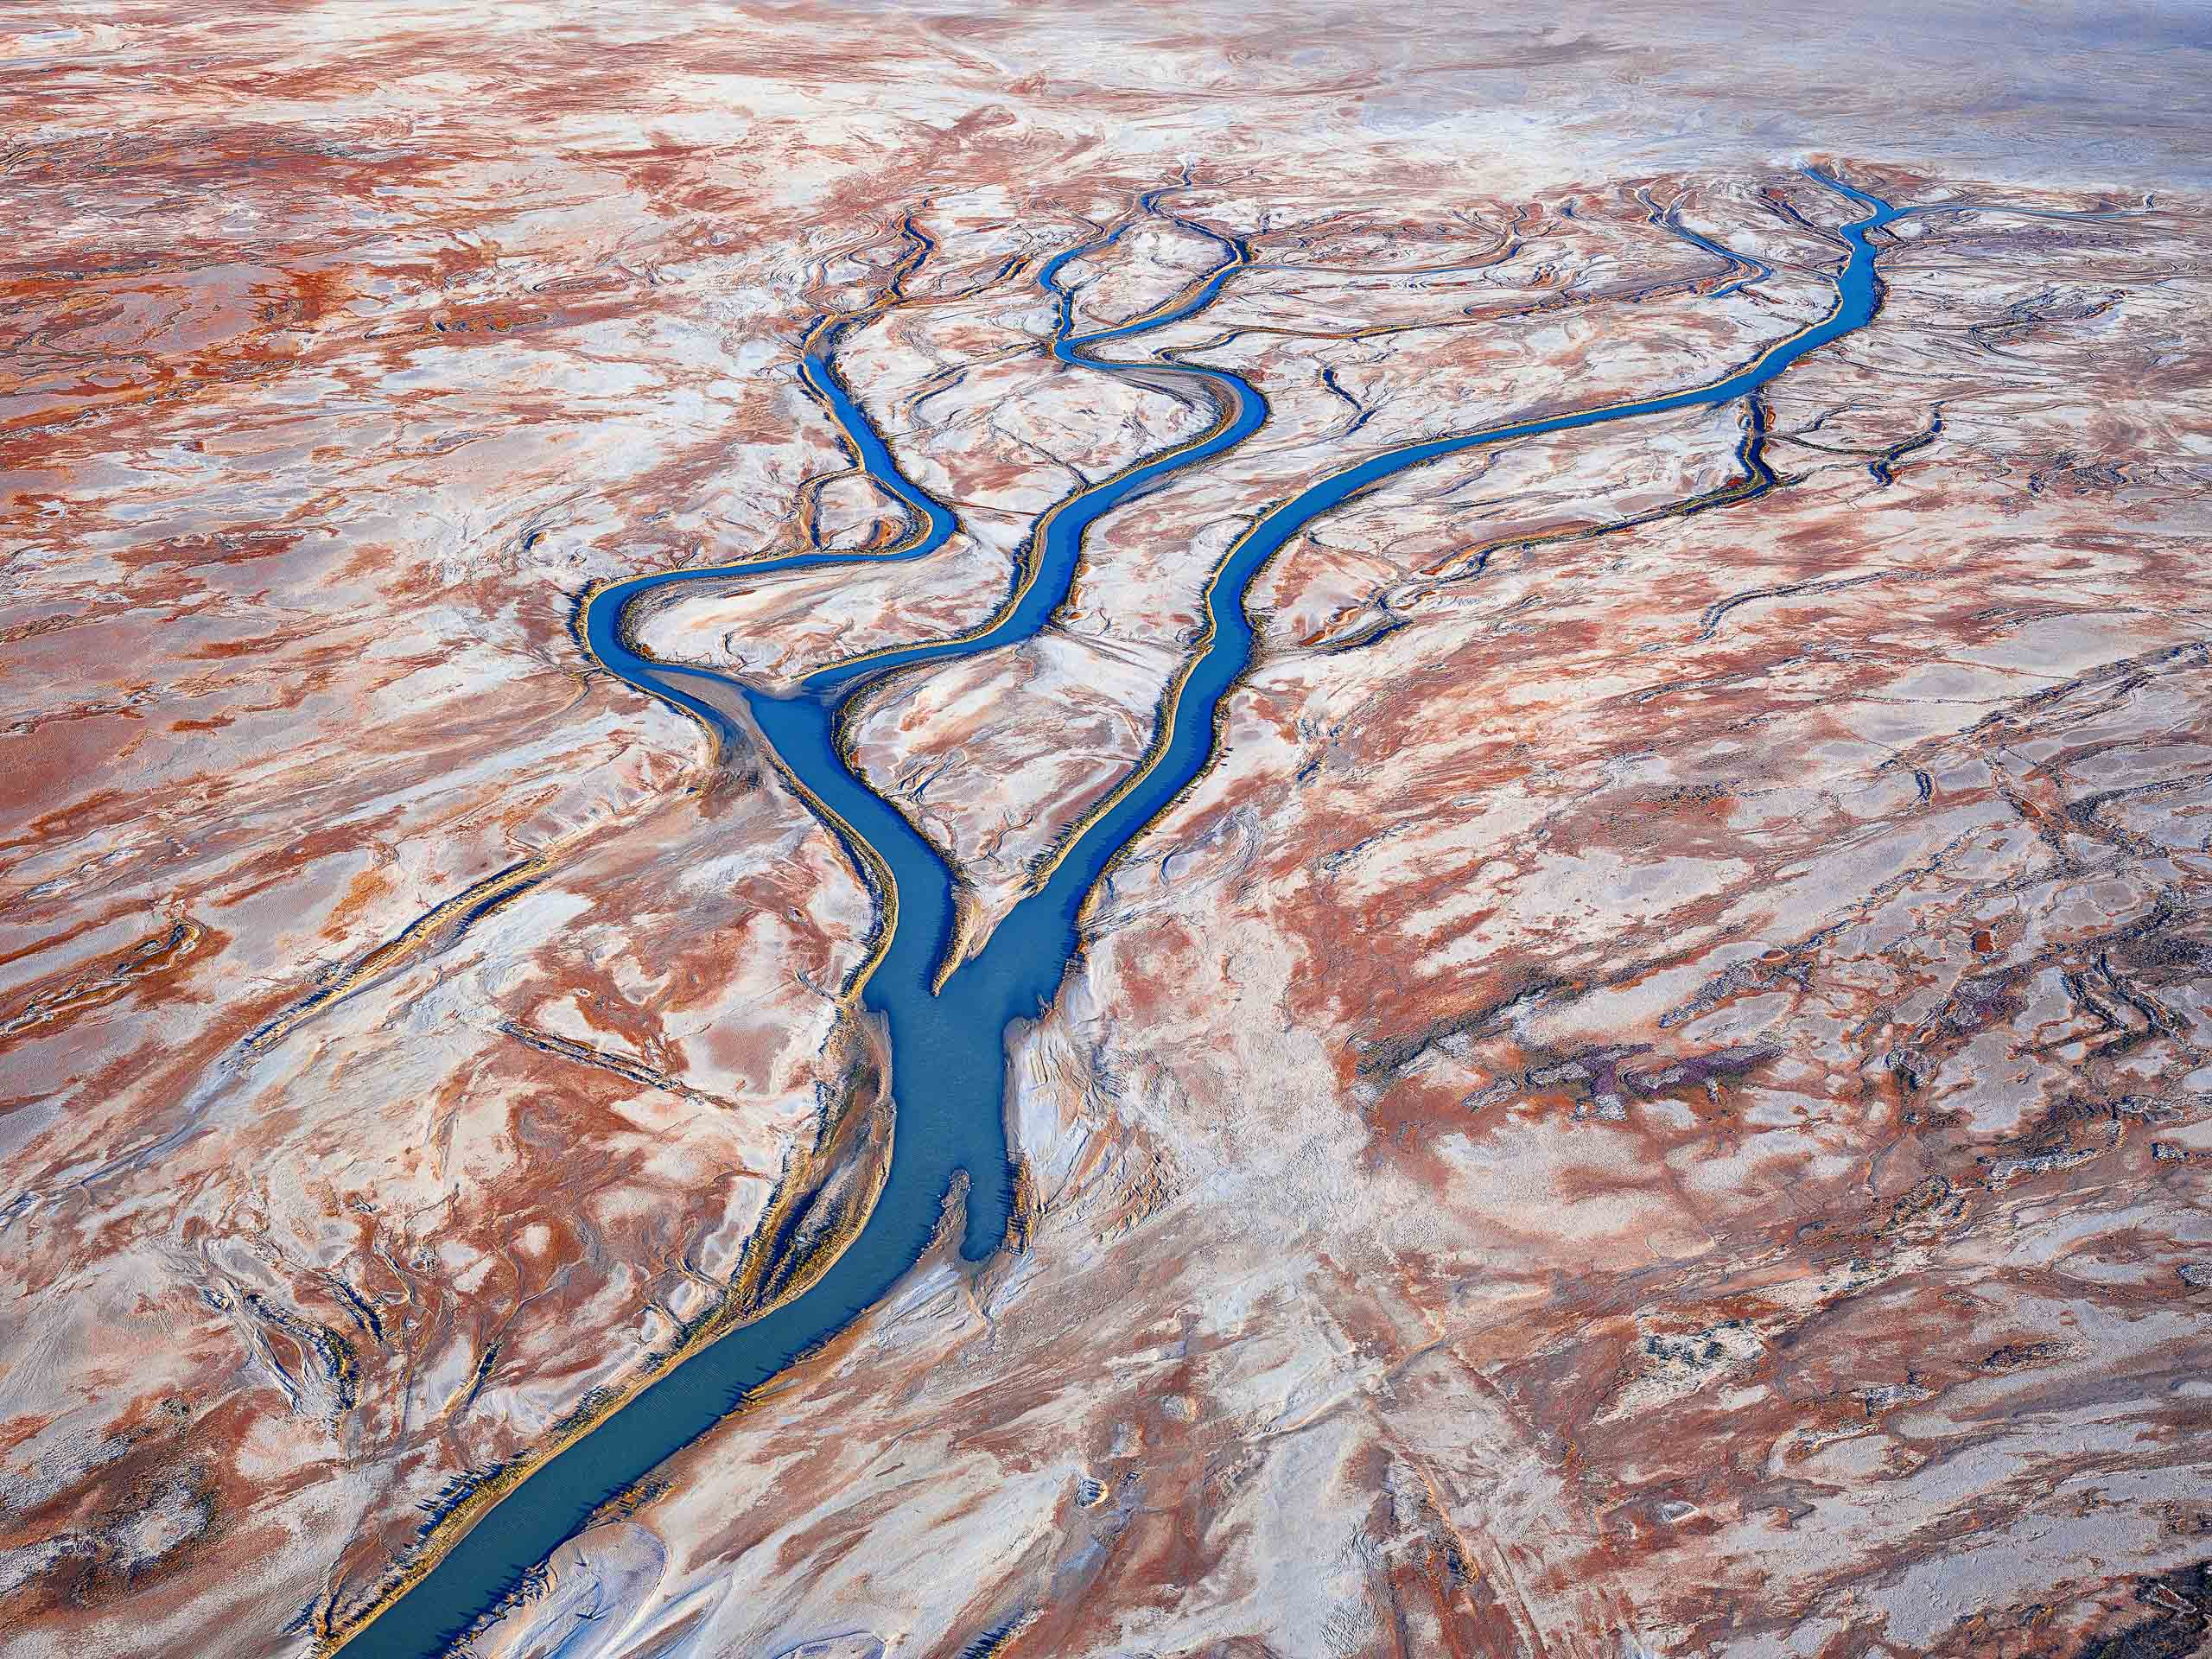 Flood waters flowing towards the northern end of Lake Eyre, SA, Australia.